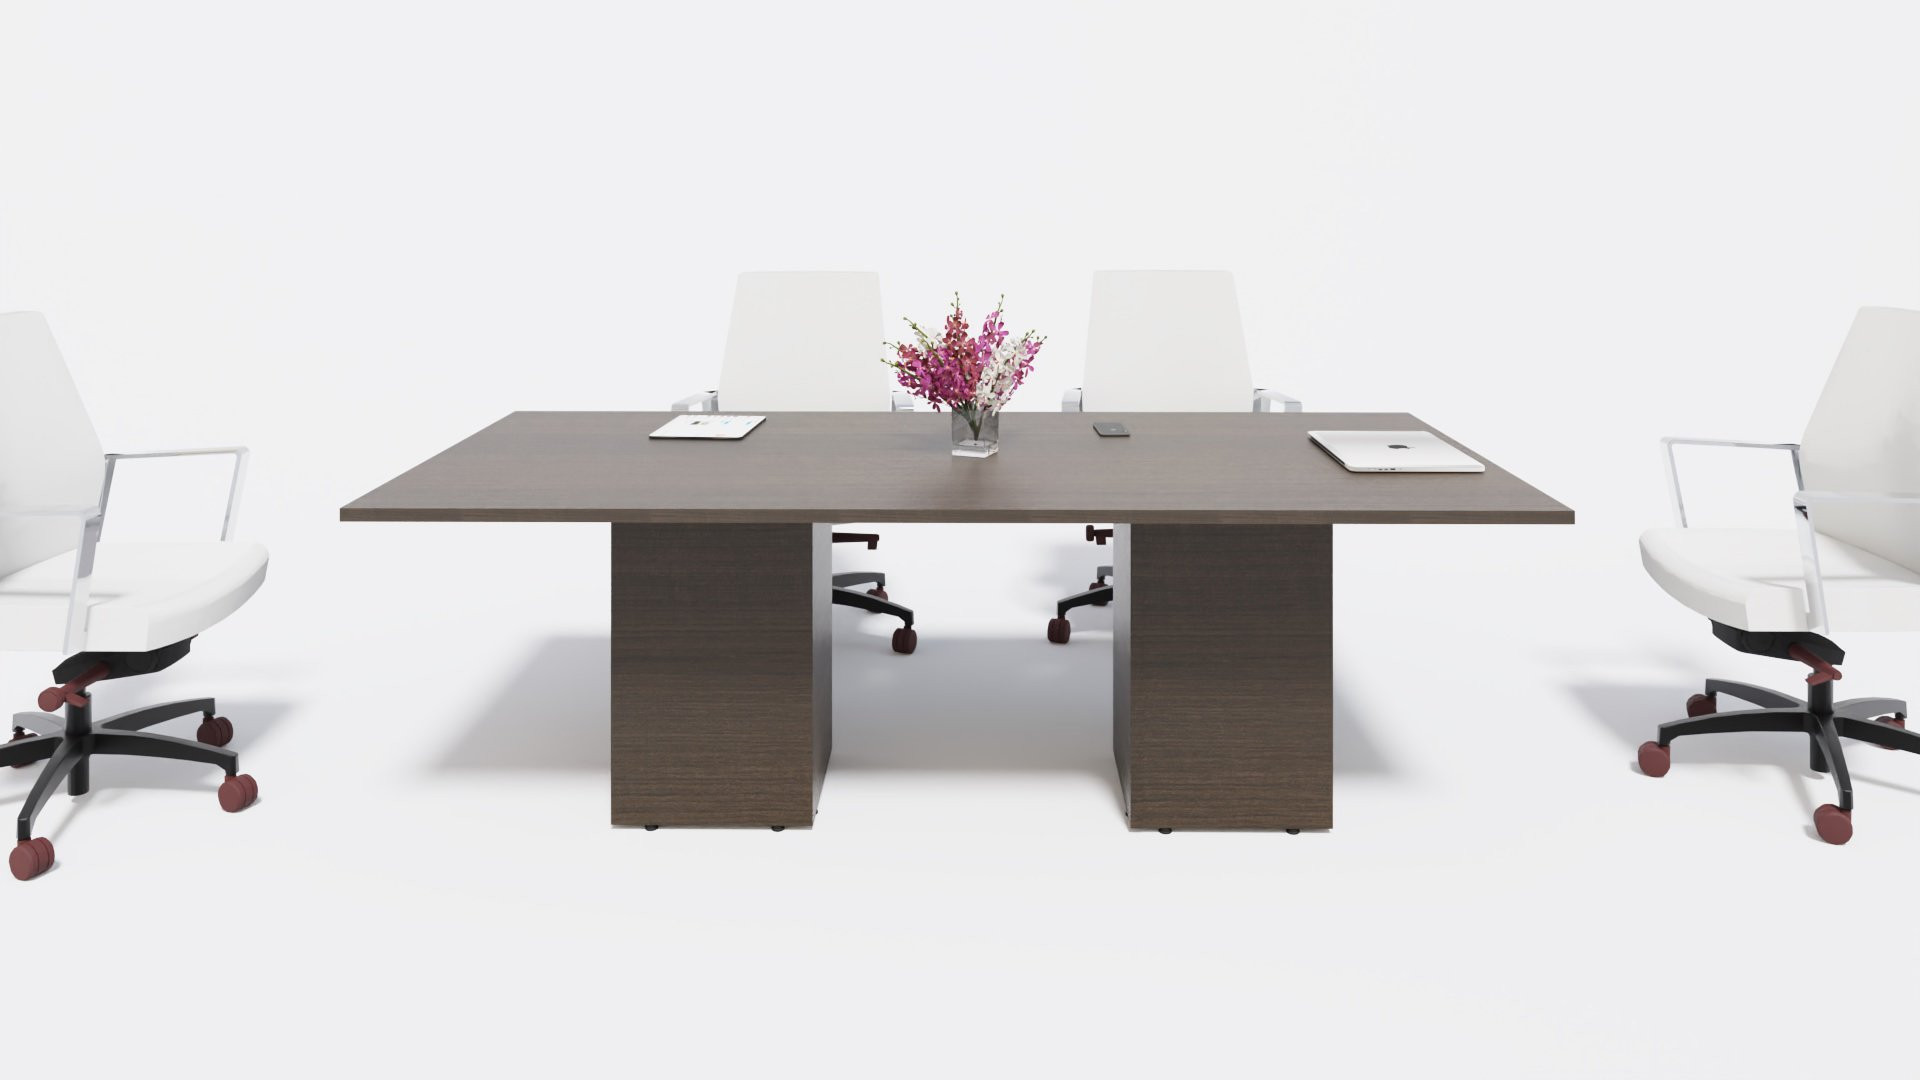 Boardroom Table 1630 with chairs in the scene